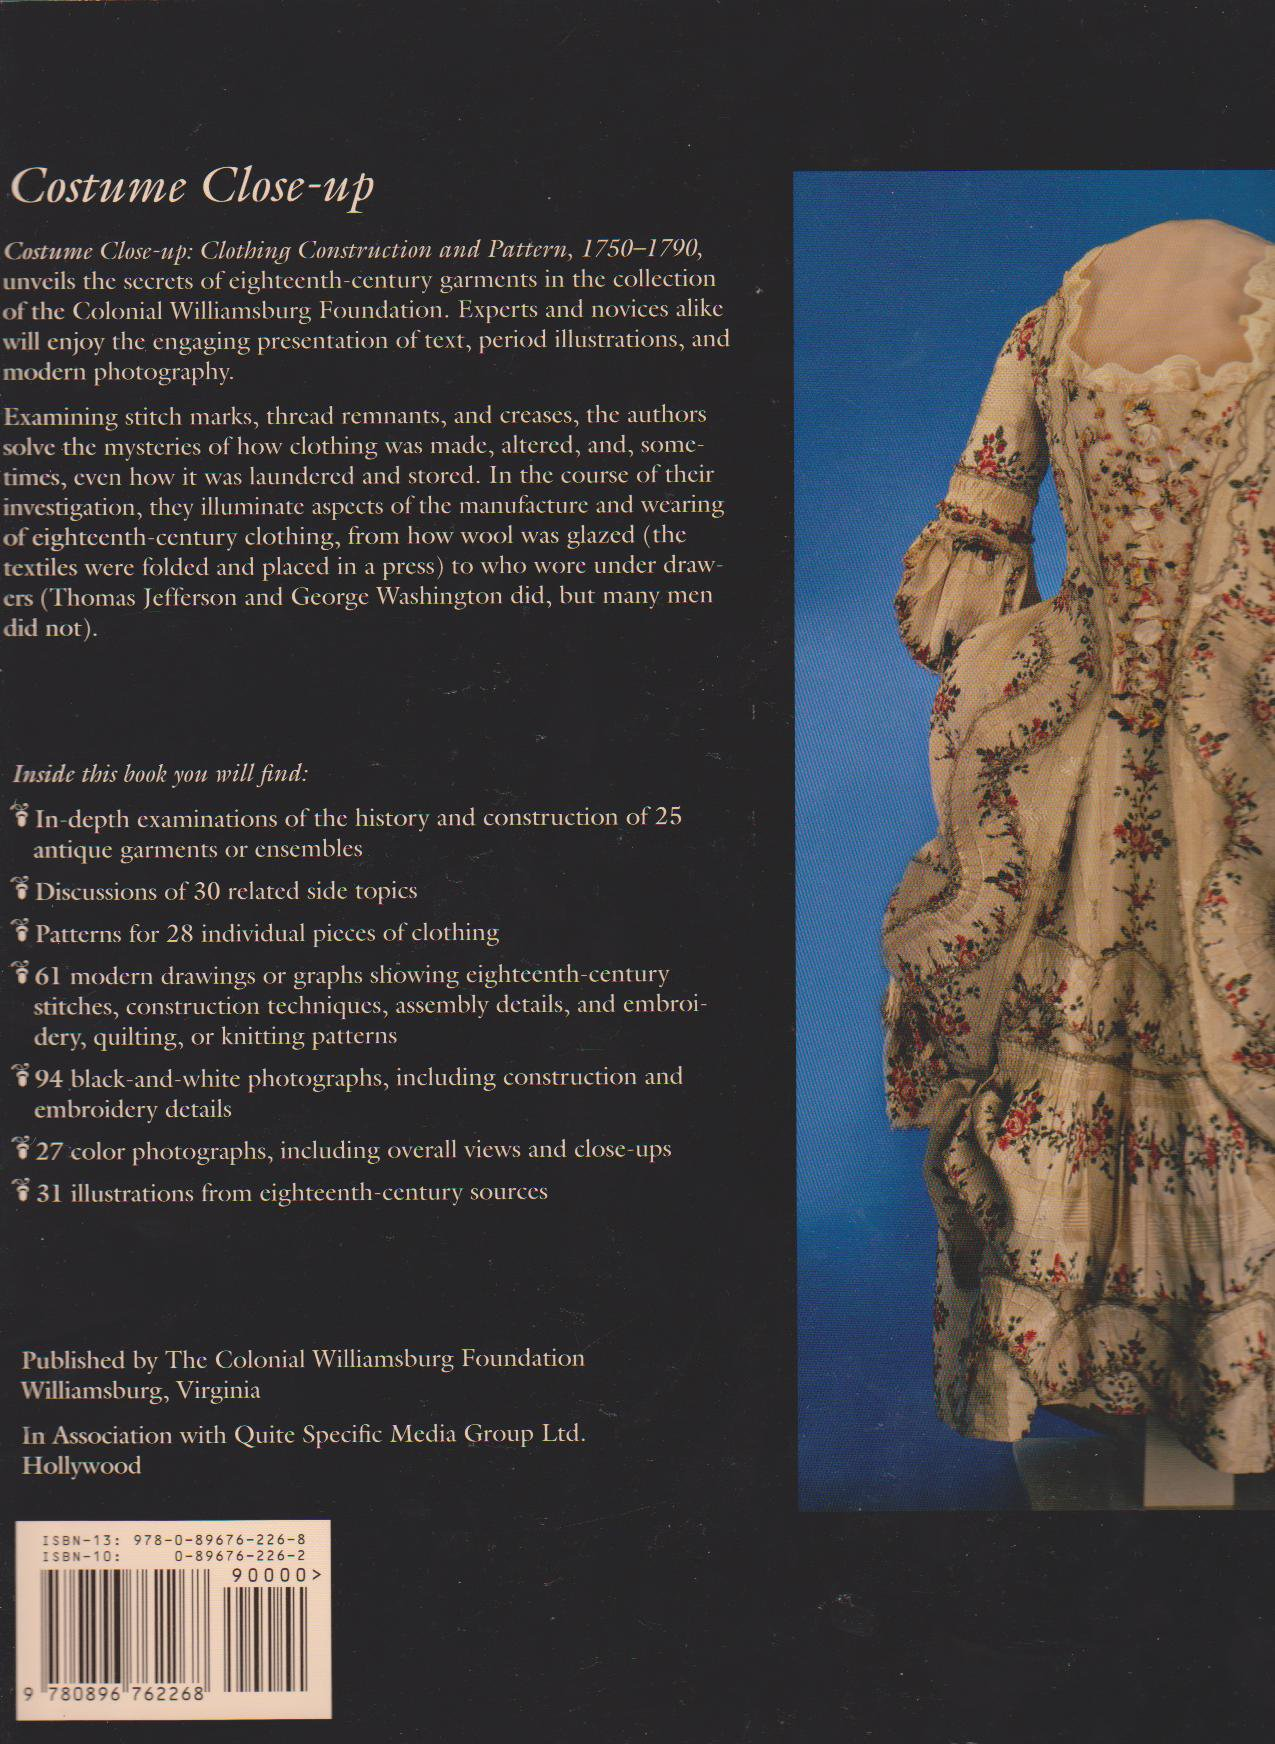 Costume Close up - L.Baumgarten and J.Watson - Back Page - History of Fashion Images - Costume Research for the Eighteenth Century - Close-up Images for the Eighteenth Century Researcher - Georgian Clothing - Photo's of Original Garments -HandBound Bibliography